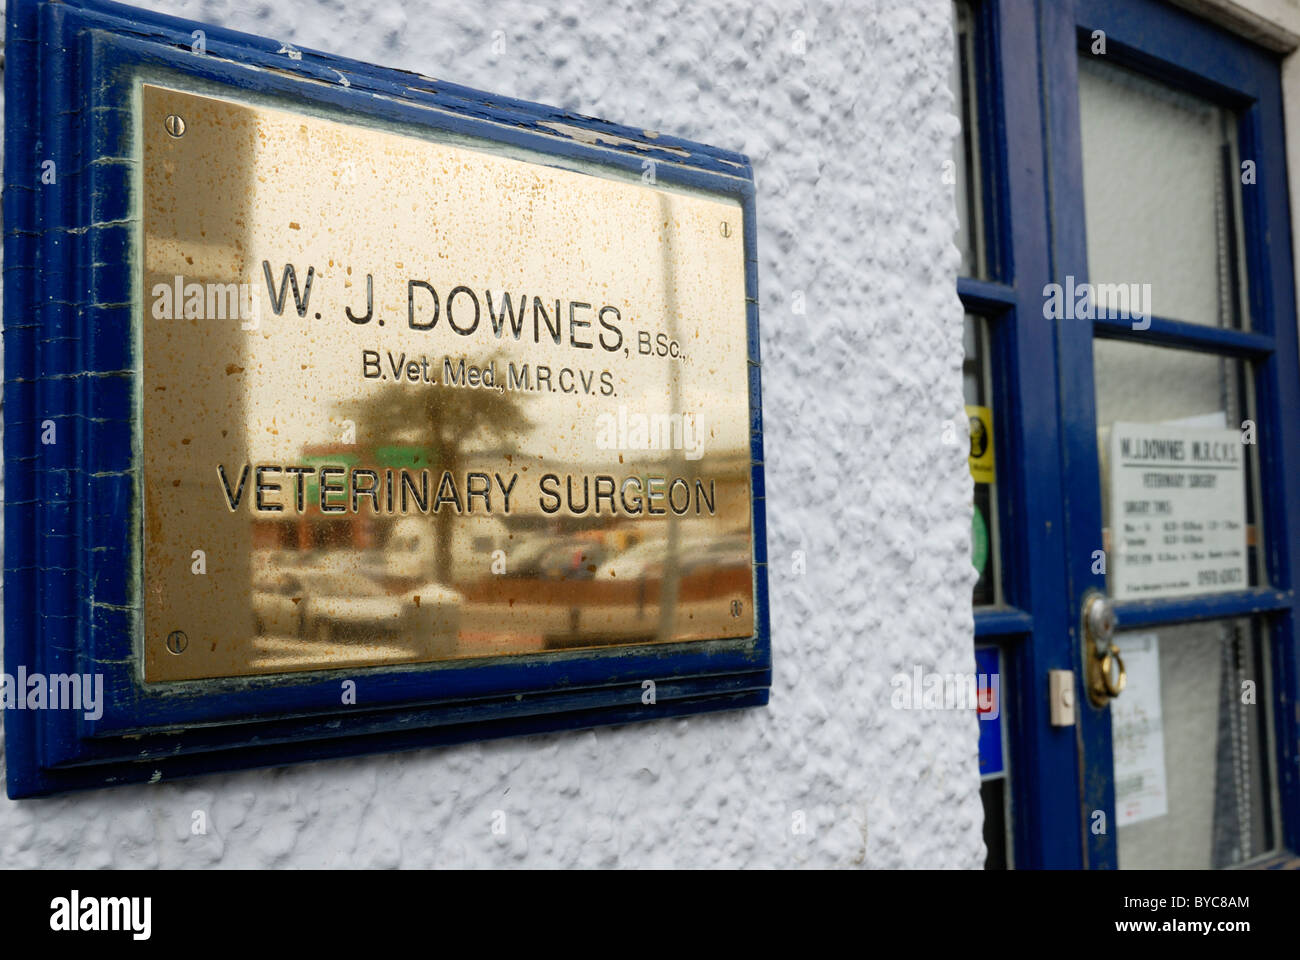 Name plaque outside a veterinary surgery, Aberystwyth, Wales - Stock Image